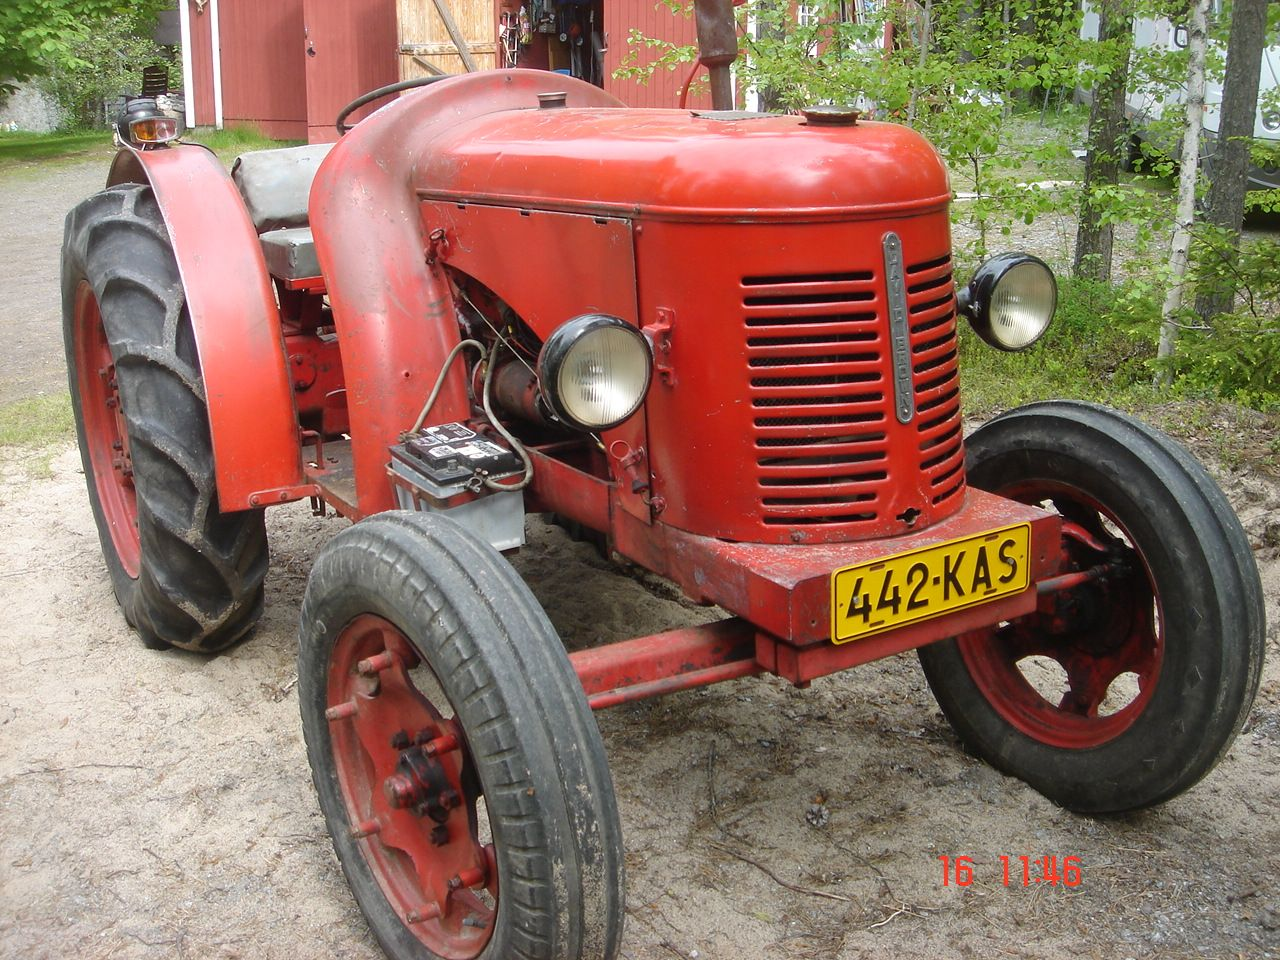 David Brown 1949 Two seater Vintage tractors, Tractors